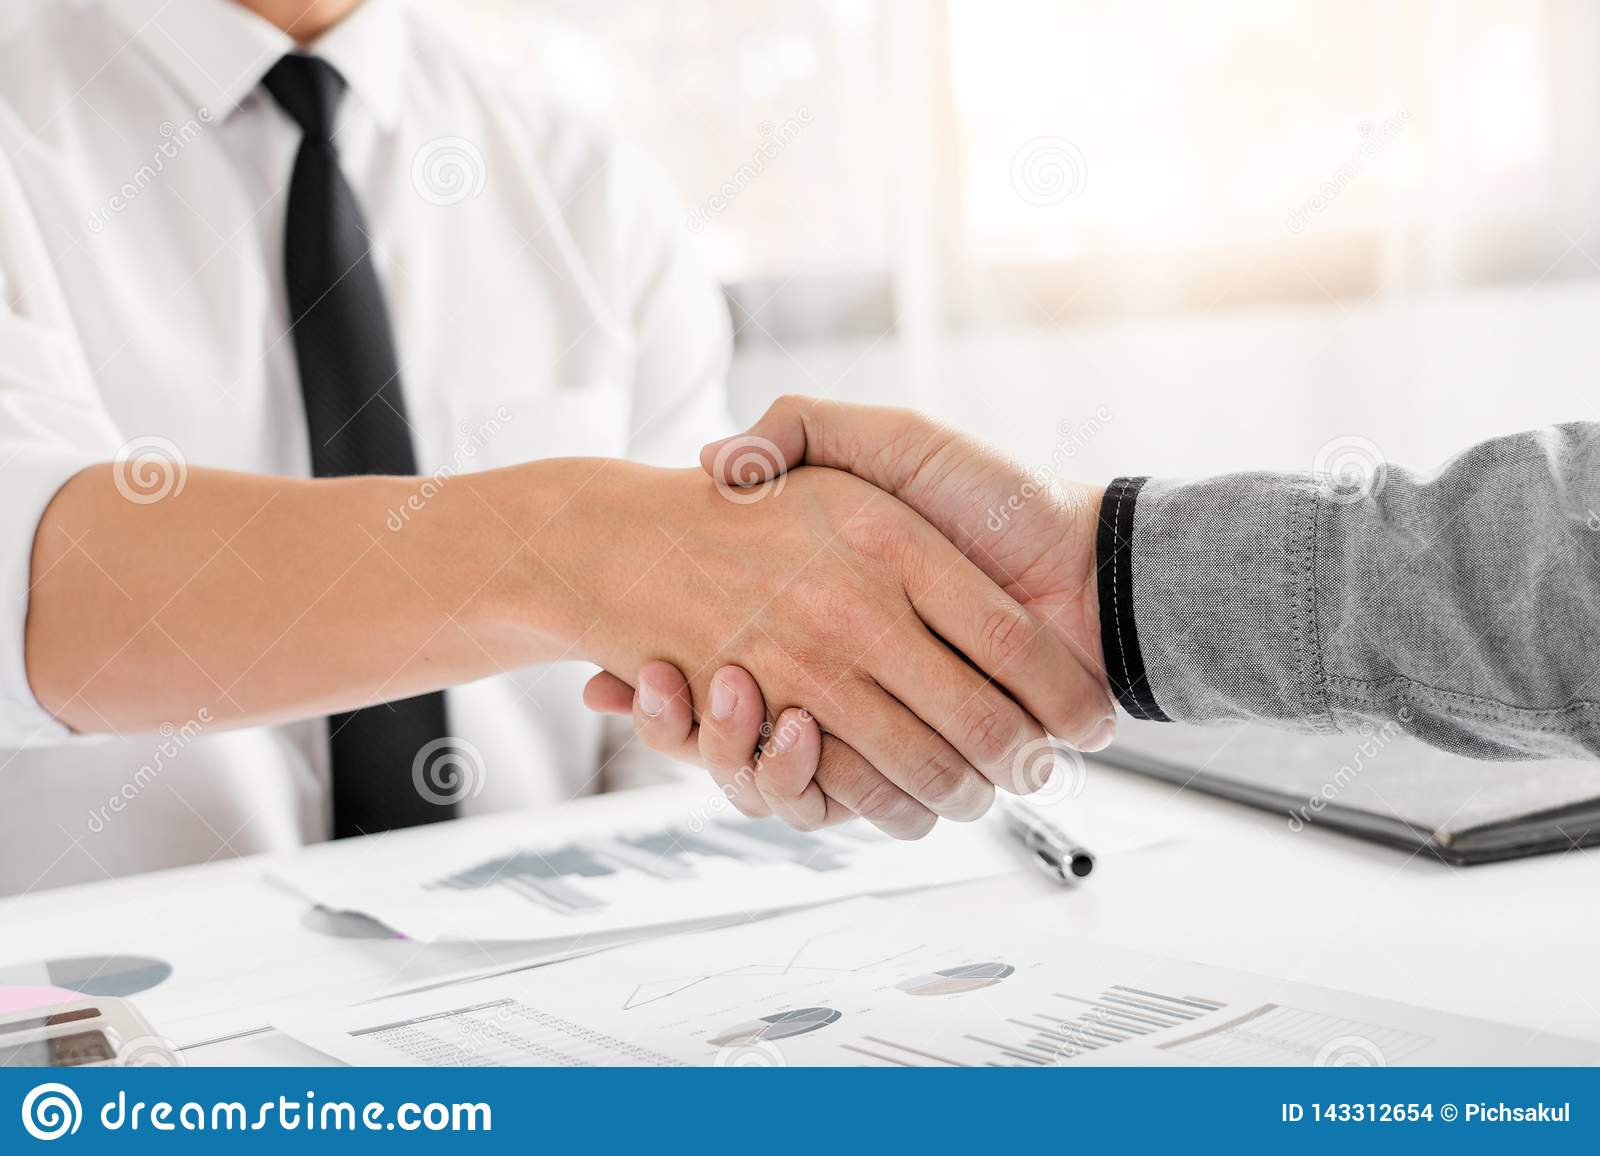 Business Meeting agreement Handshake concept, Hand holding after finishing up dealing project or bargain success at negotiation